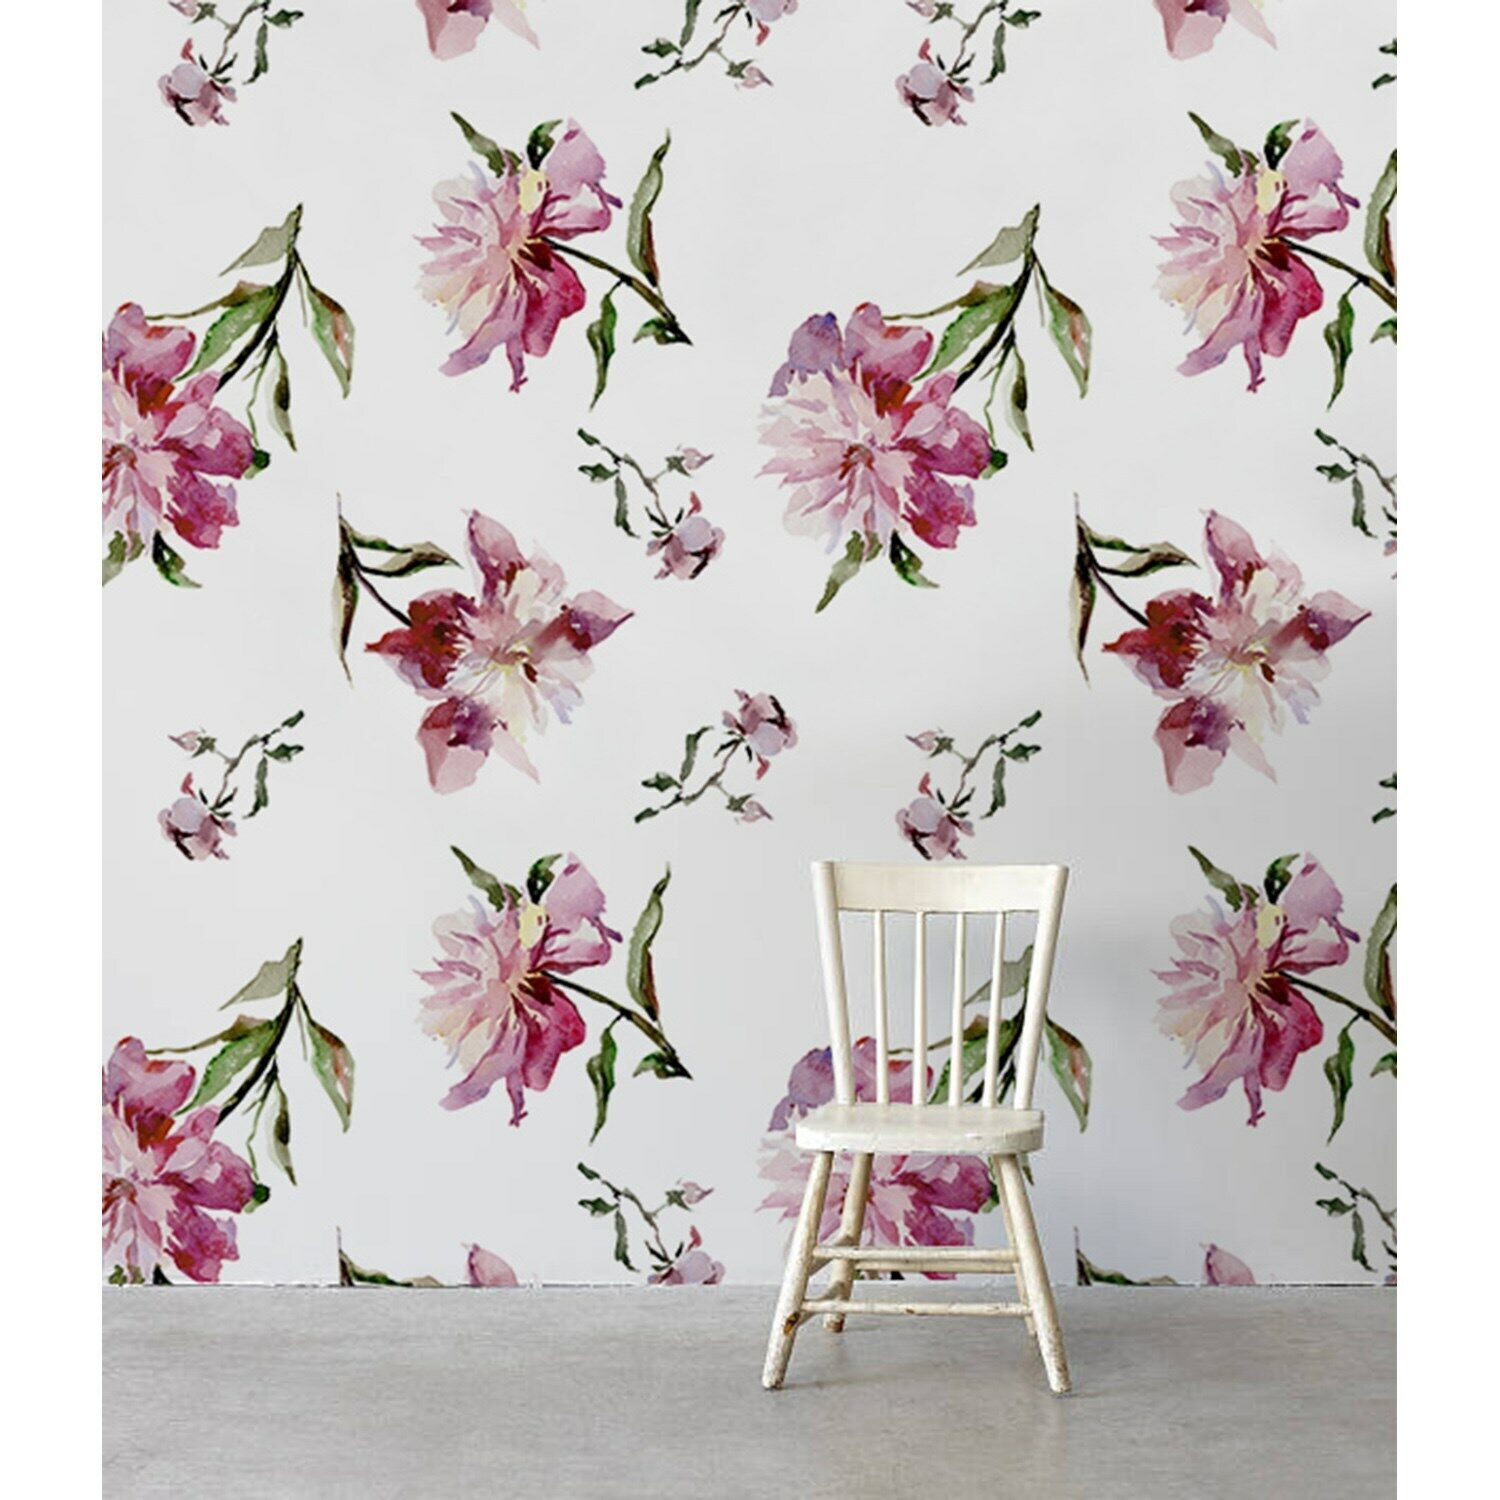 Falling Watermelon Peonies Non-Woven wallpaper Traditional Roll Home Mural